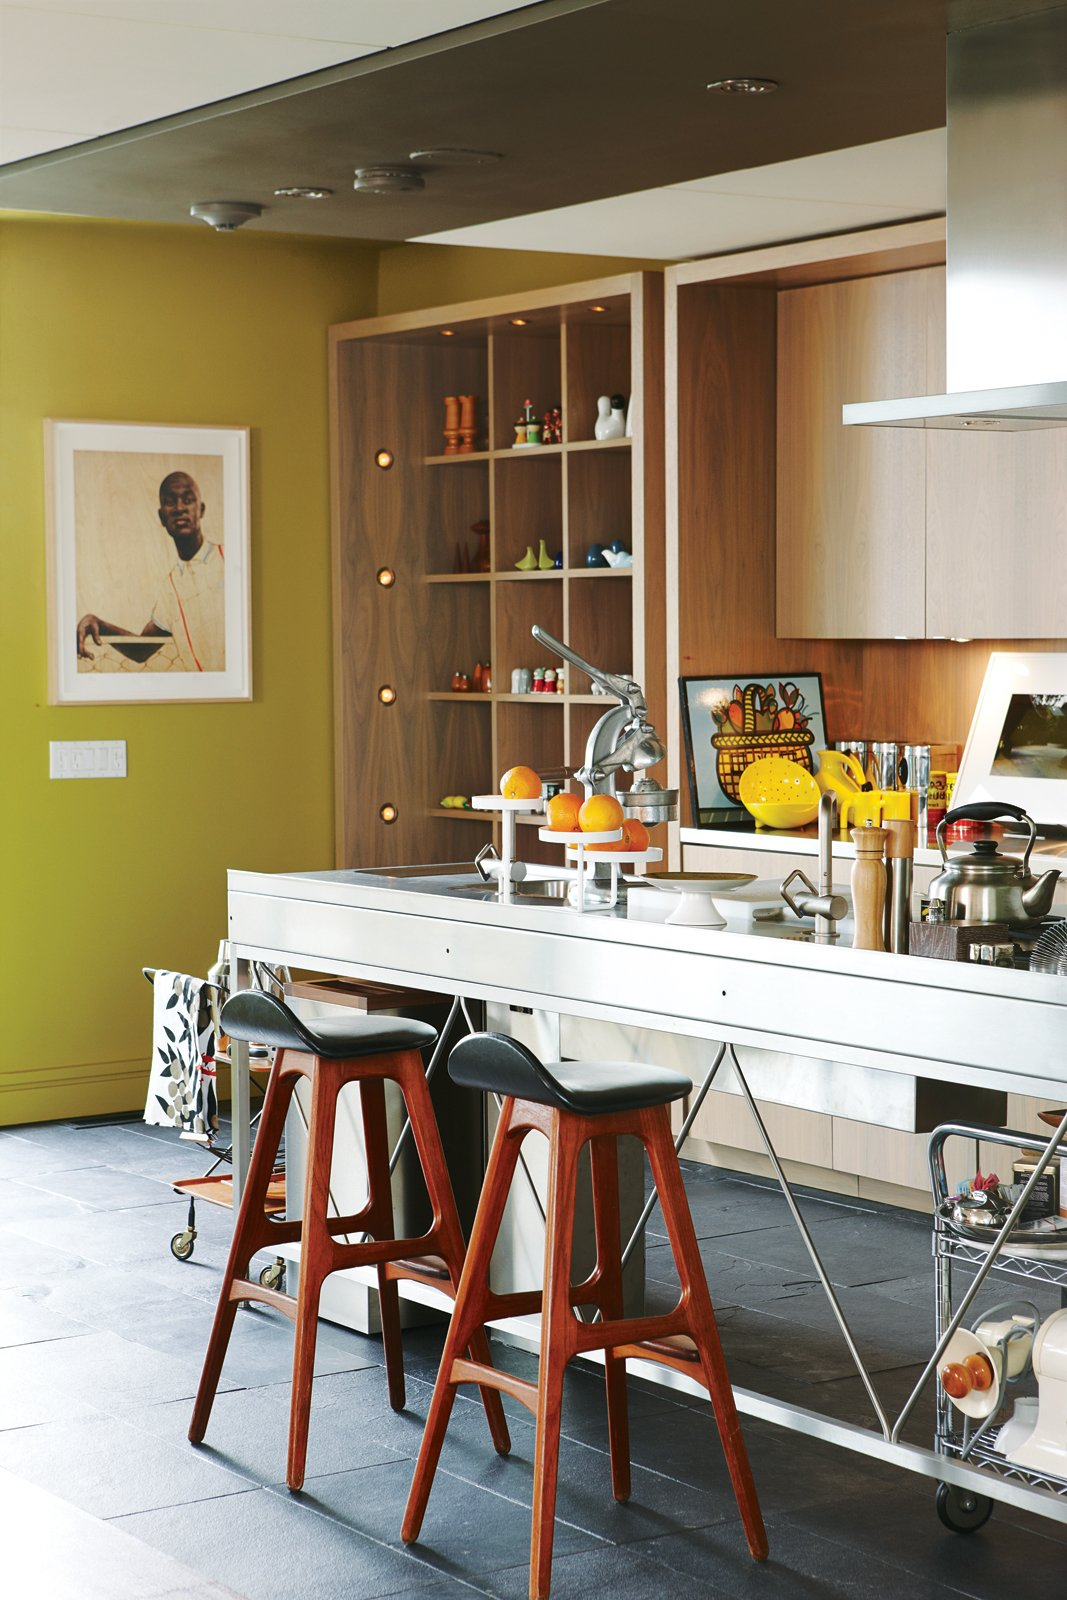 Merveilleux Modern Kitchens We Love Collection Of 20 Photos By Sara Ost   Dwell